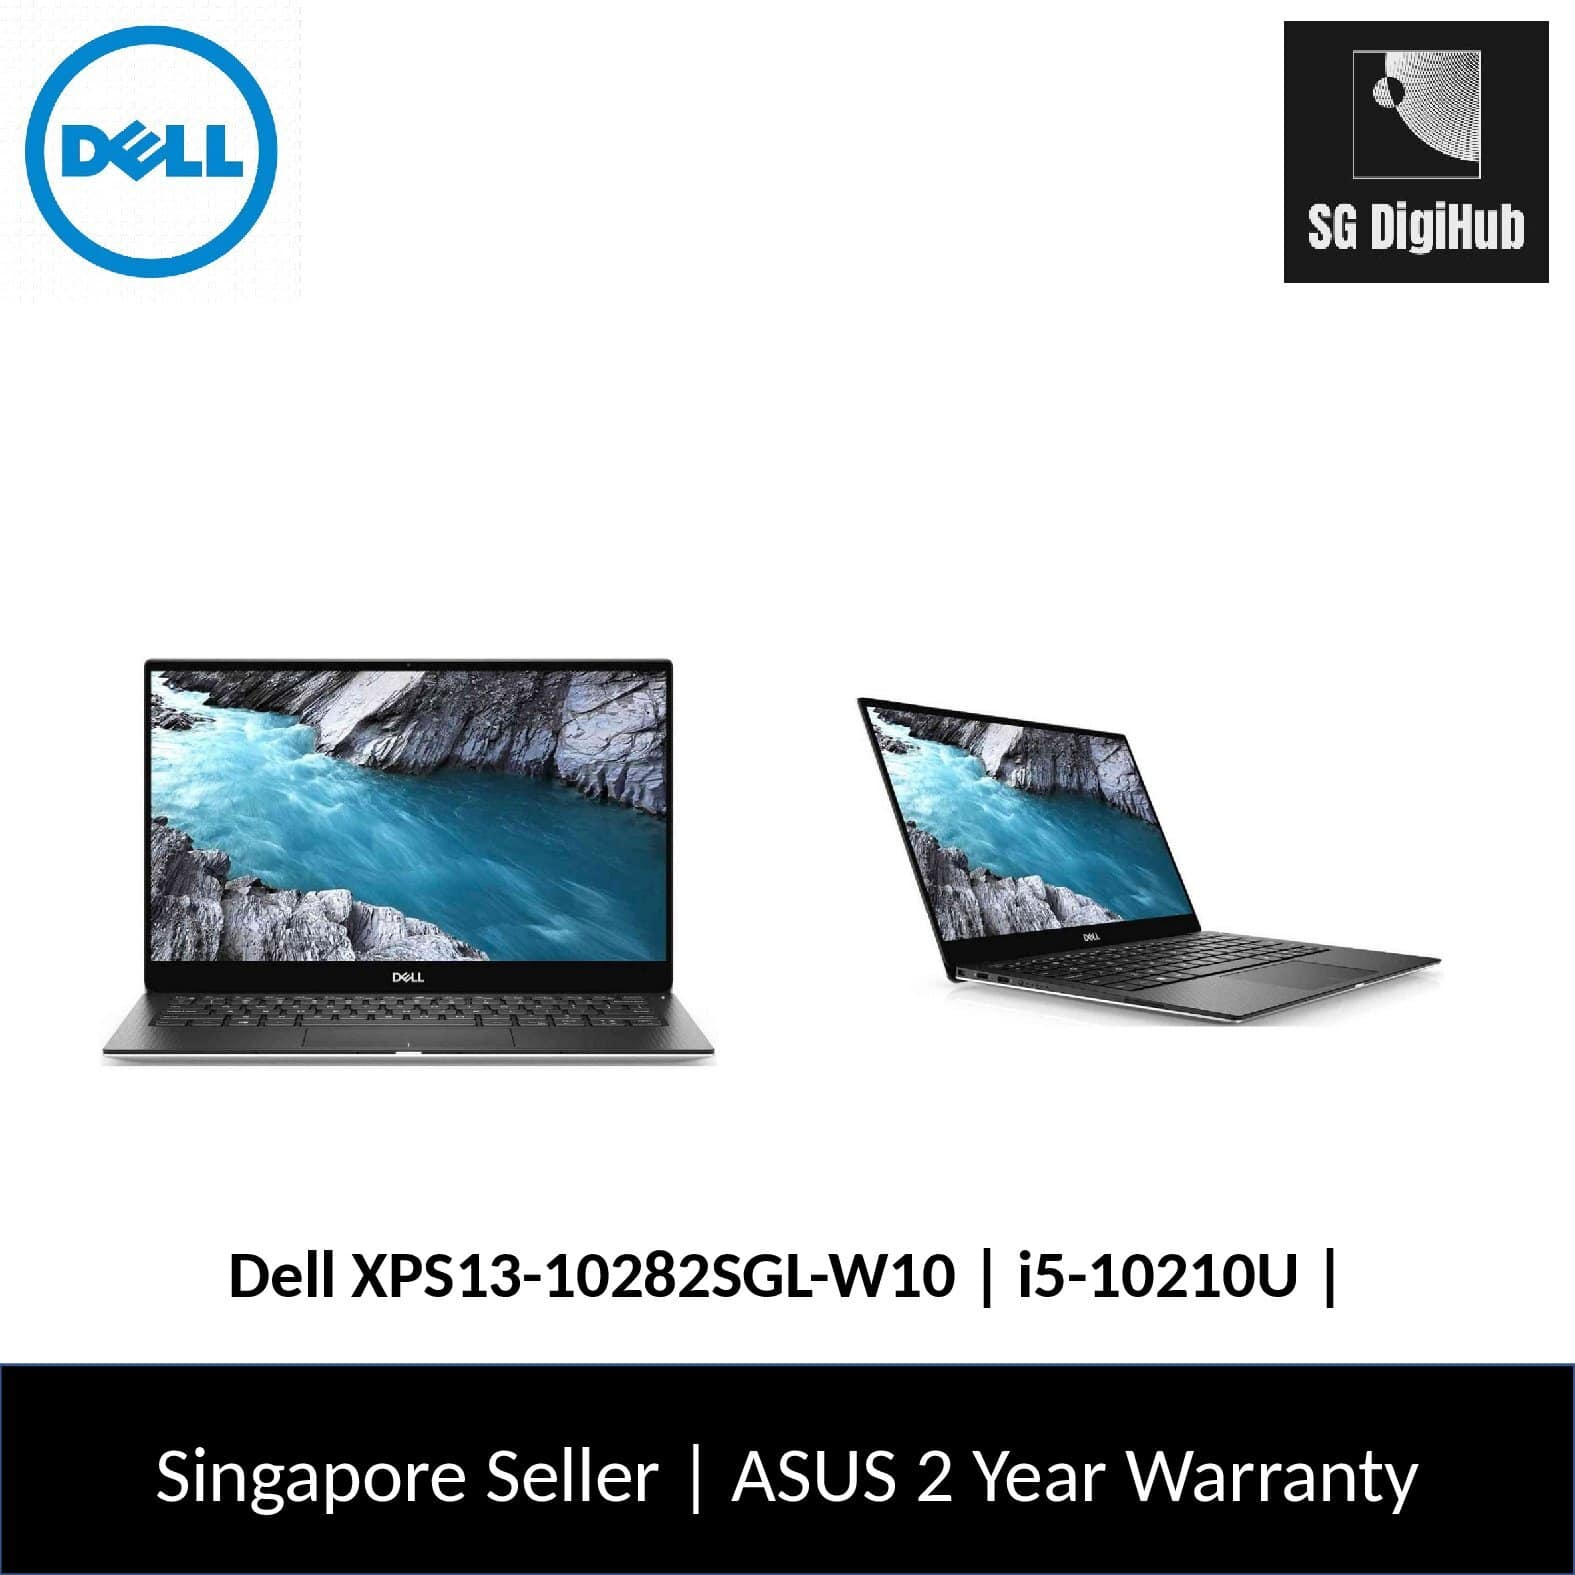 Dell XPS13-10282SGL-W10 | i5-10210U | 8GB RAM | 256GB SSD | Intel UHD 620 | 2Y Warranty